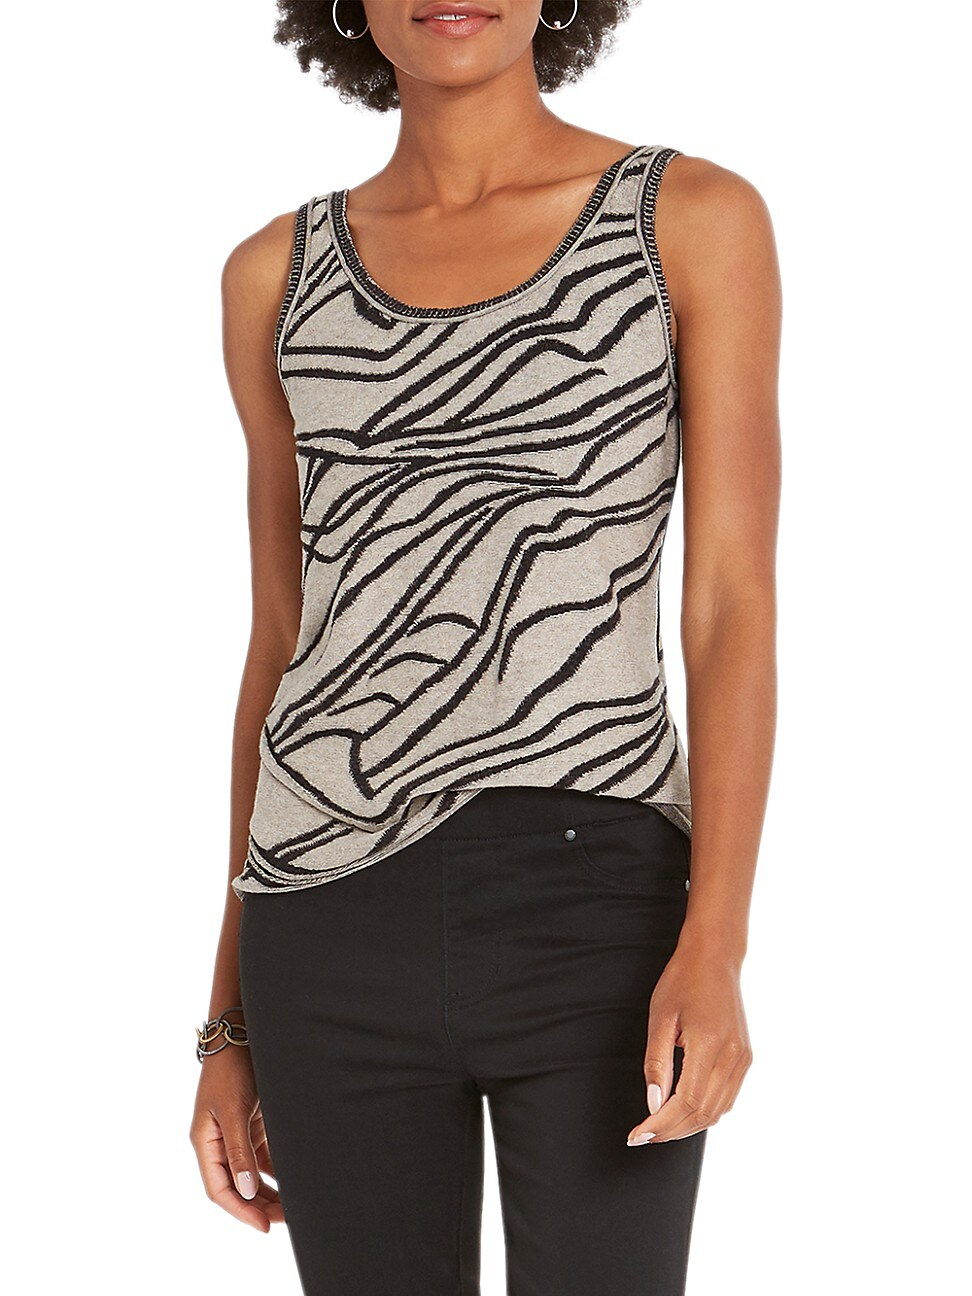 Nic + Zoe WOMEN'S INNER STRENGTH SWEATER TANK